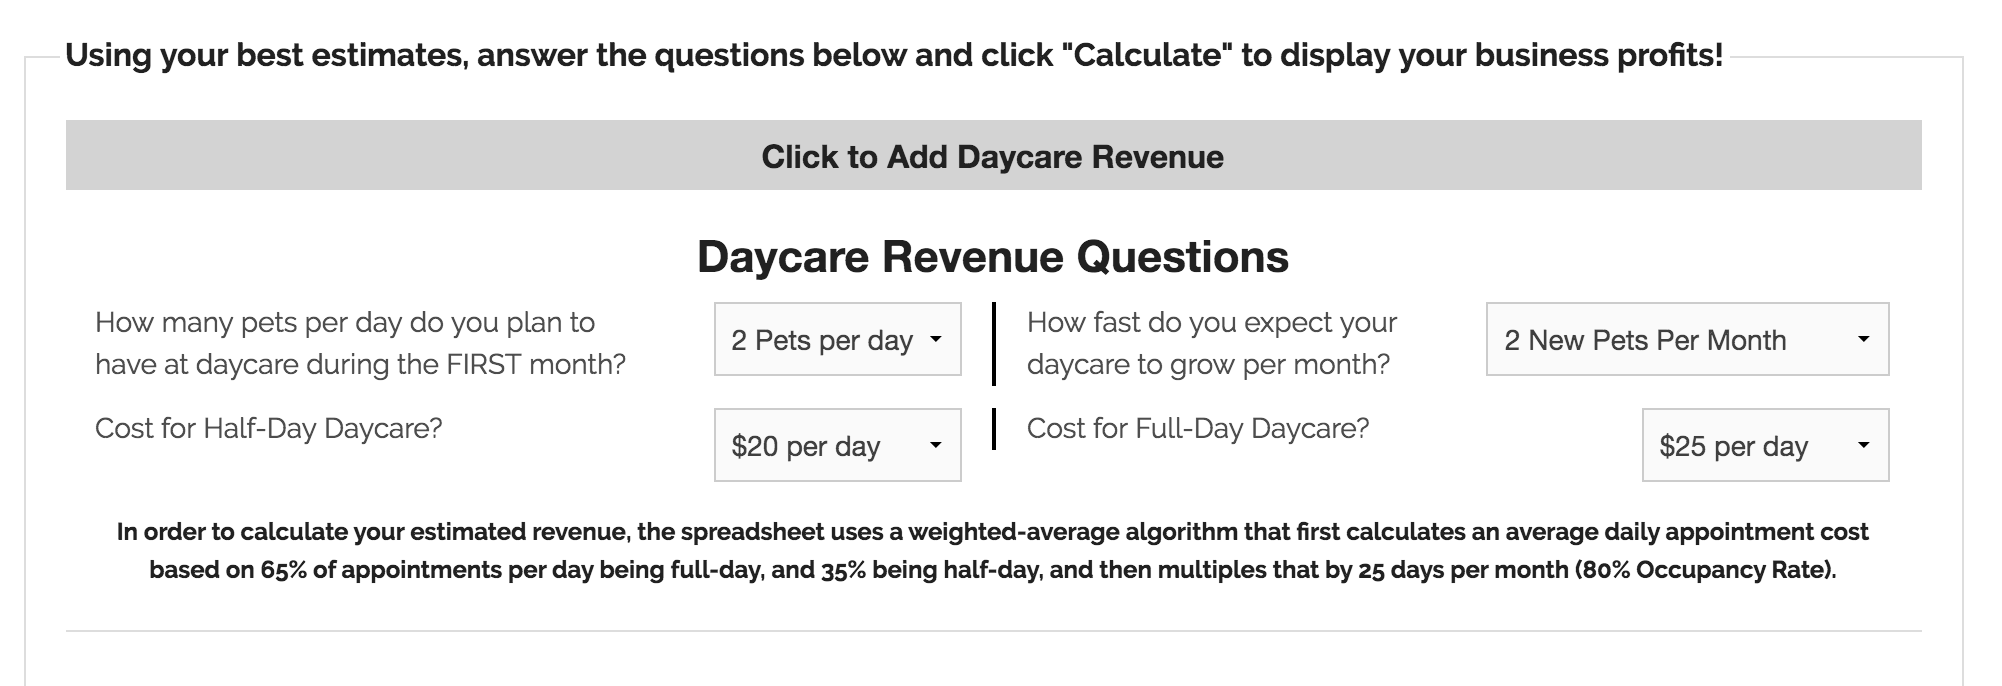 Are Doggie Daycares and Kennels Profitable? How to Calculate